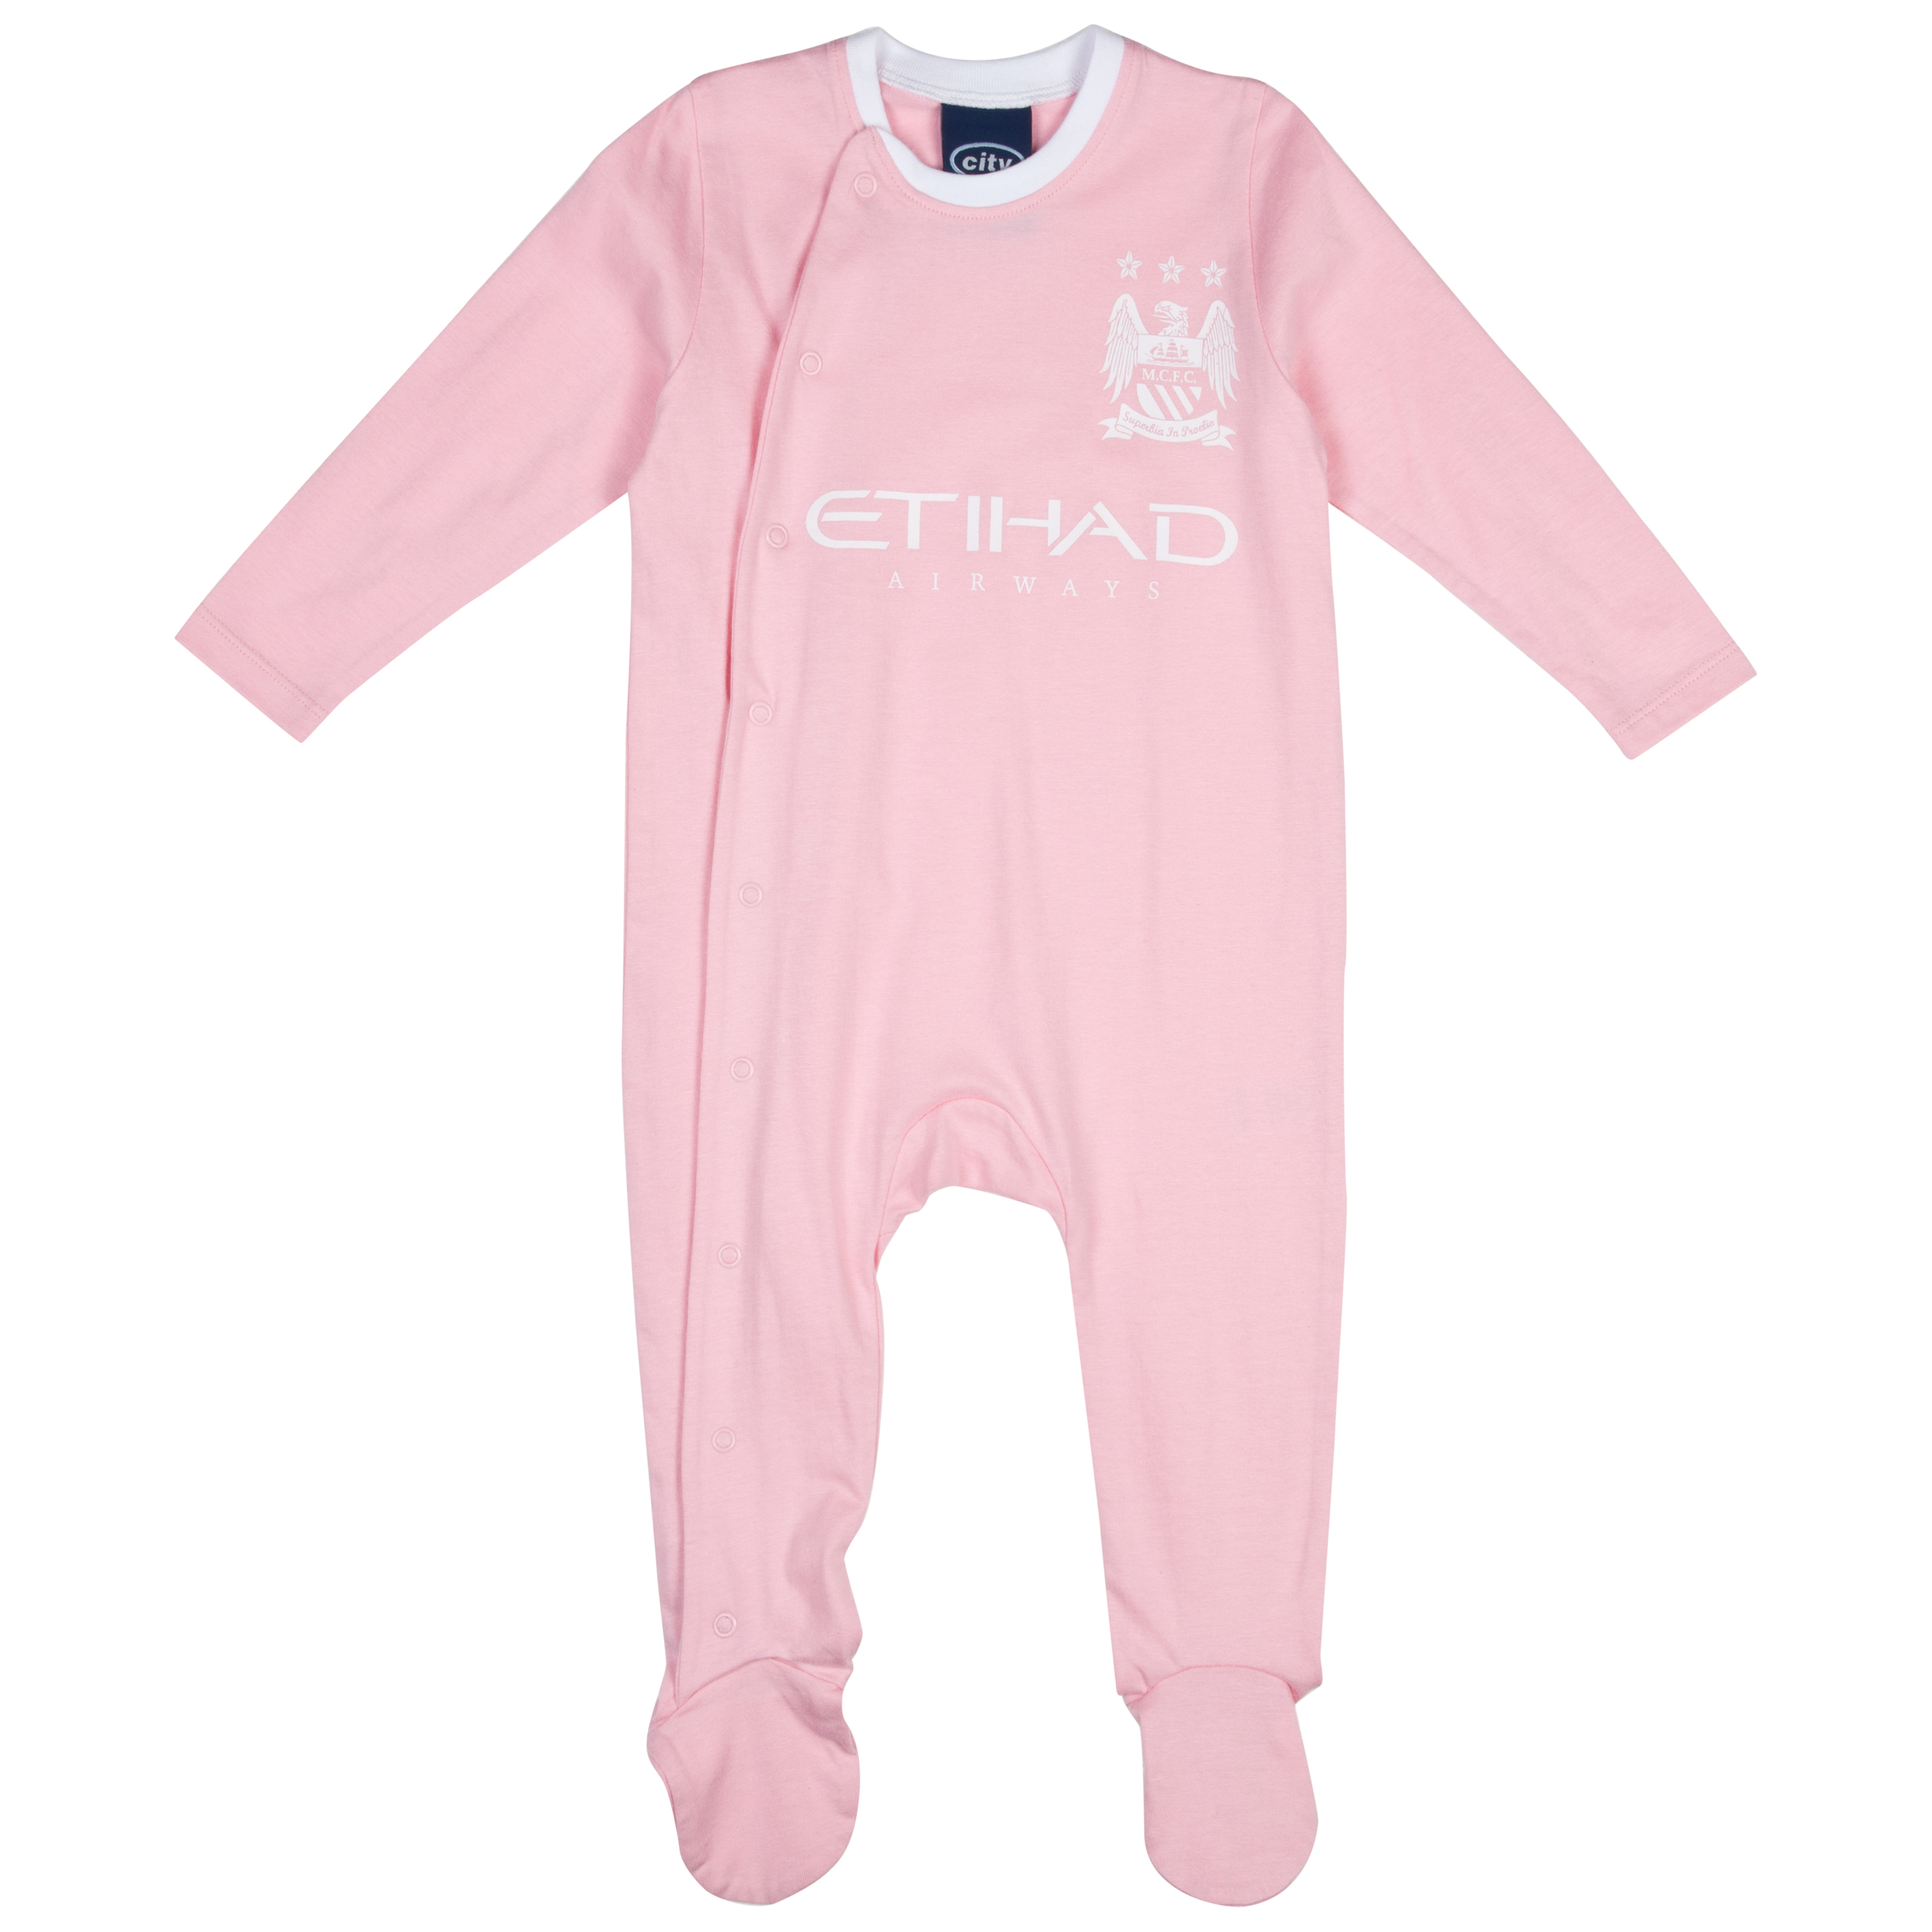 Manchester City 12/13 Kit Sleepsuit Pink/White Baby